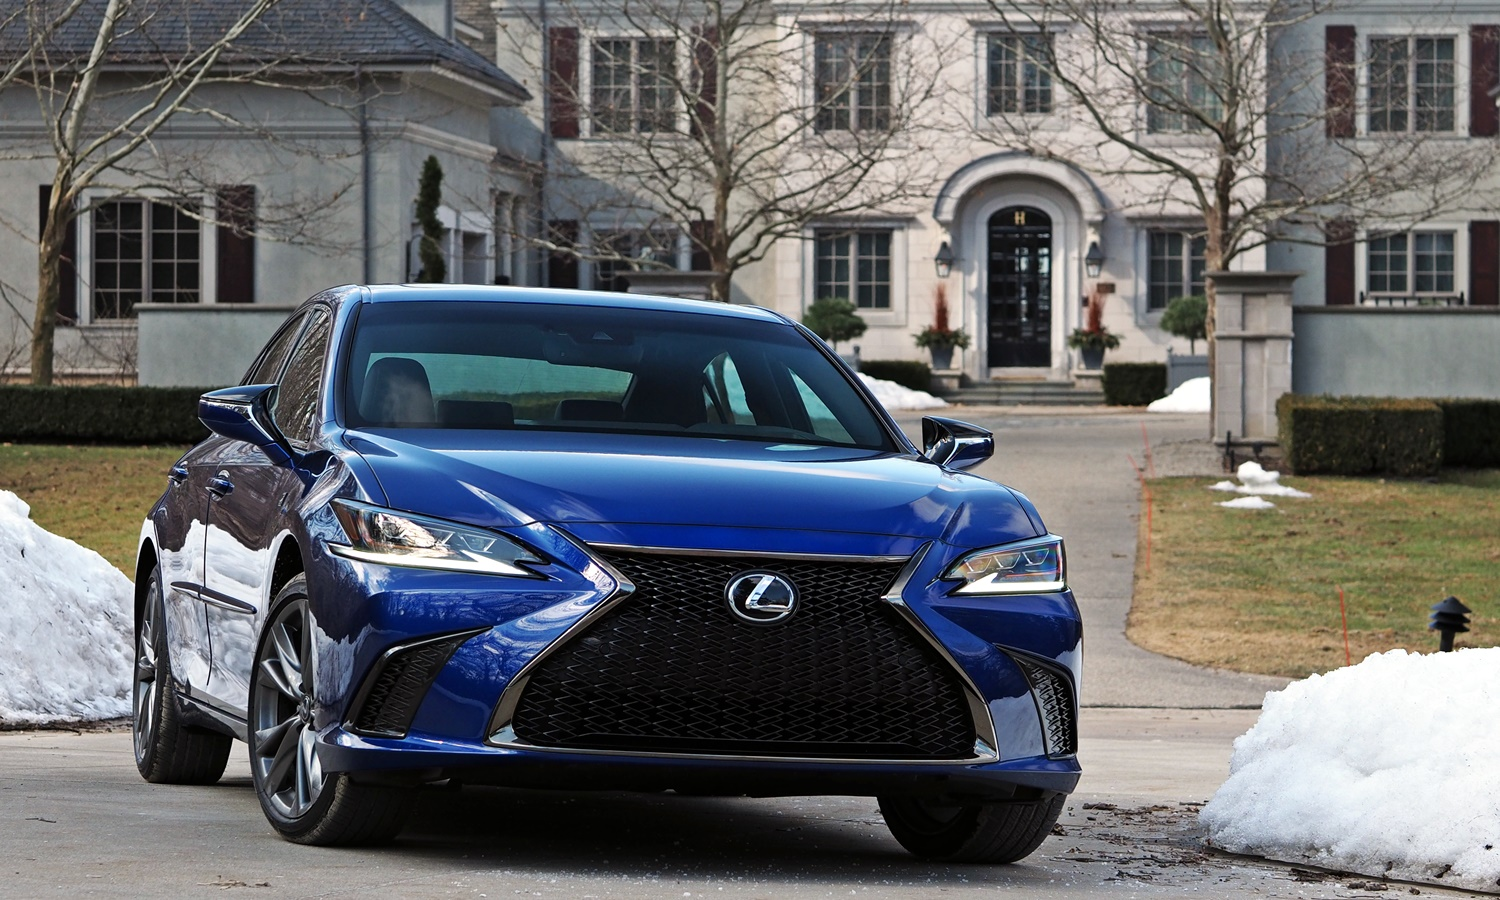 ES Reviews: Lexus ES 350 F Sport front view